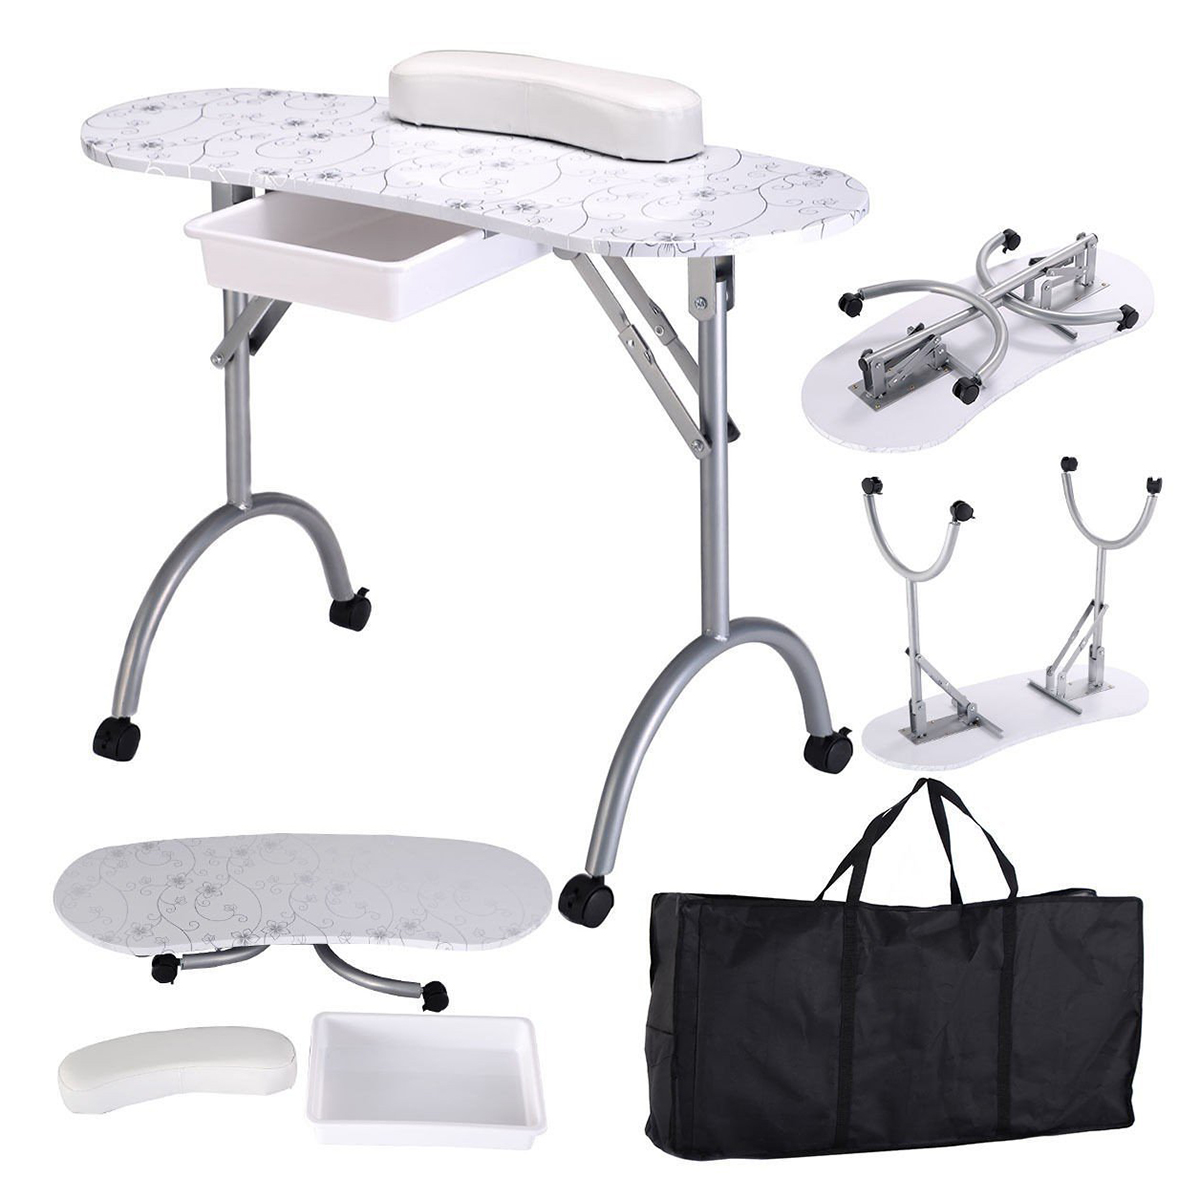 Portable Manicure Nail Table Station Desk Spa Beauty Salon Equipment (White Flowers) цена